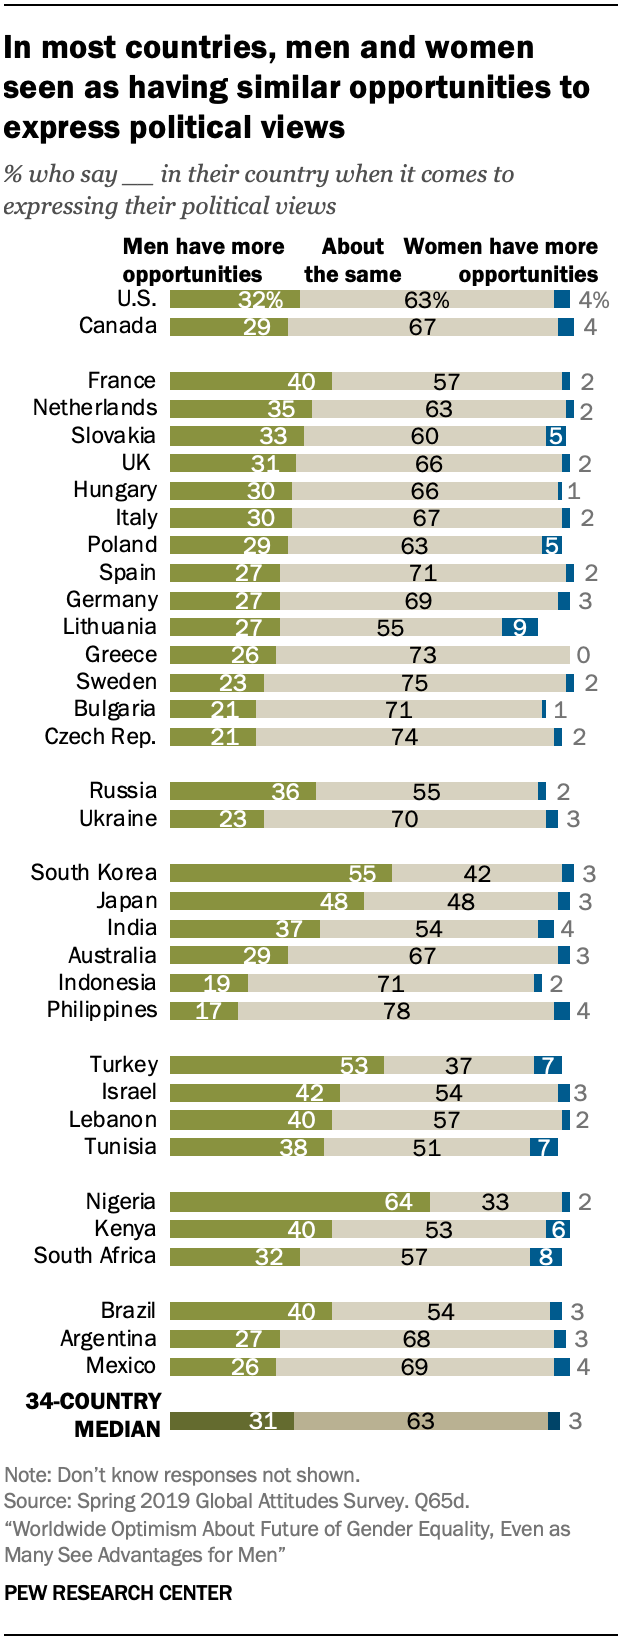 In most countries, men and women seen as having similar opportunities to express political views